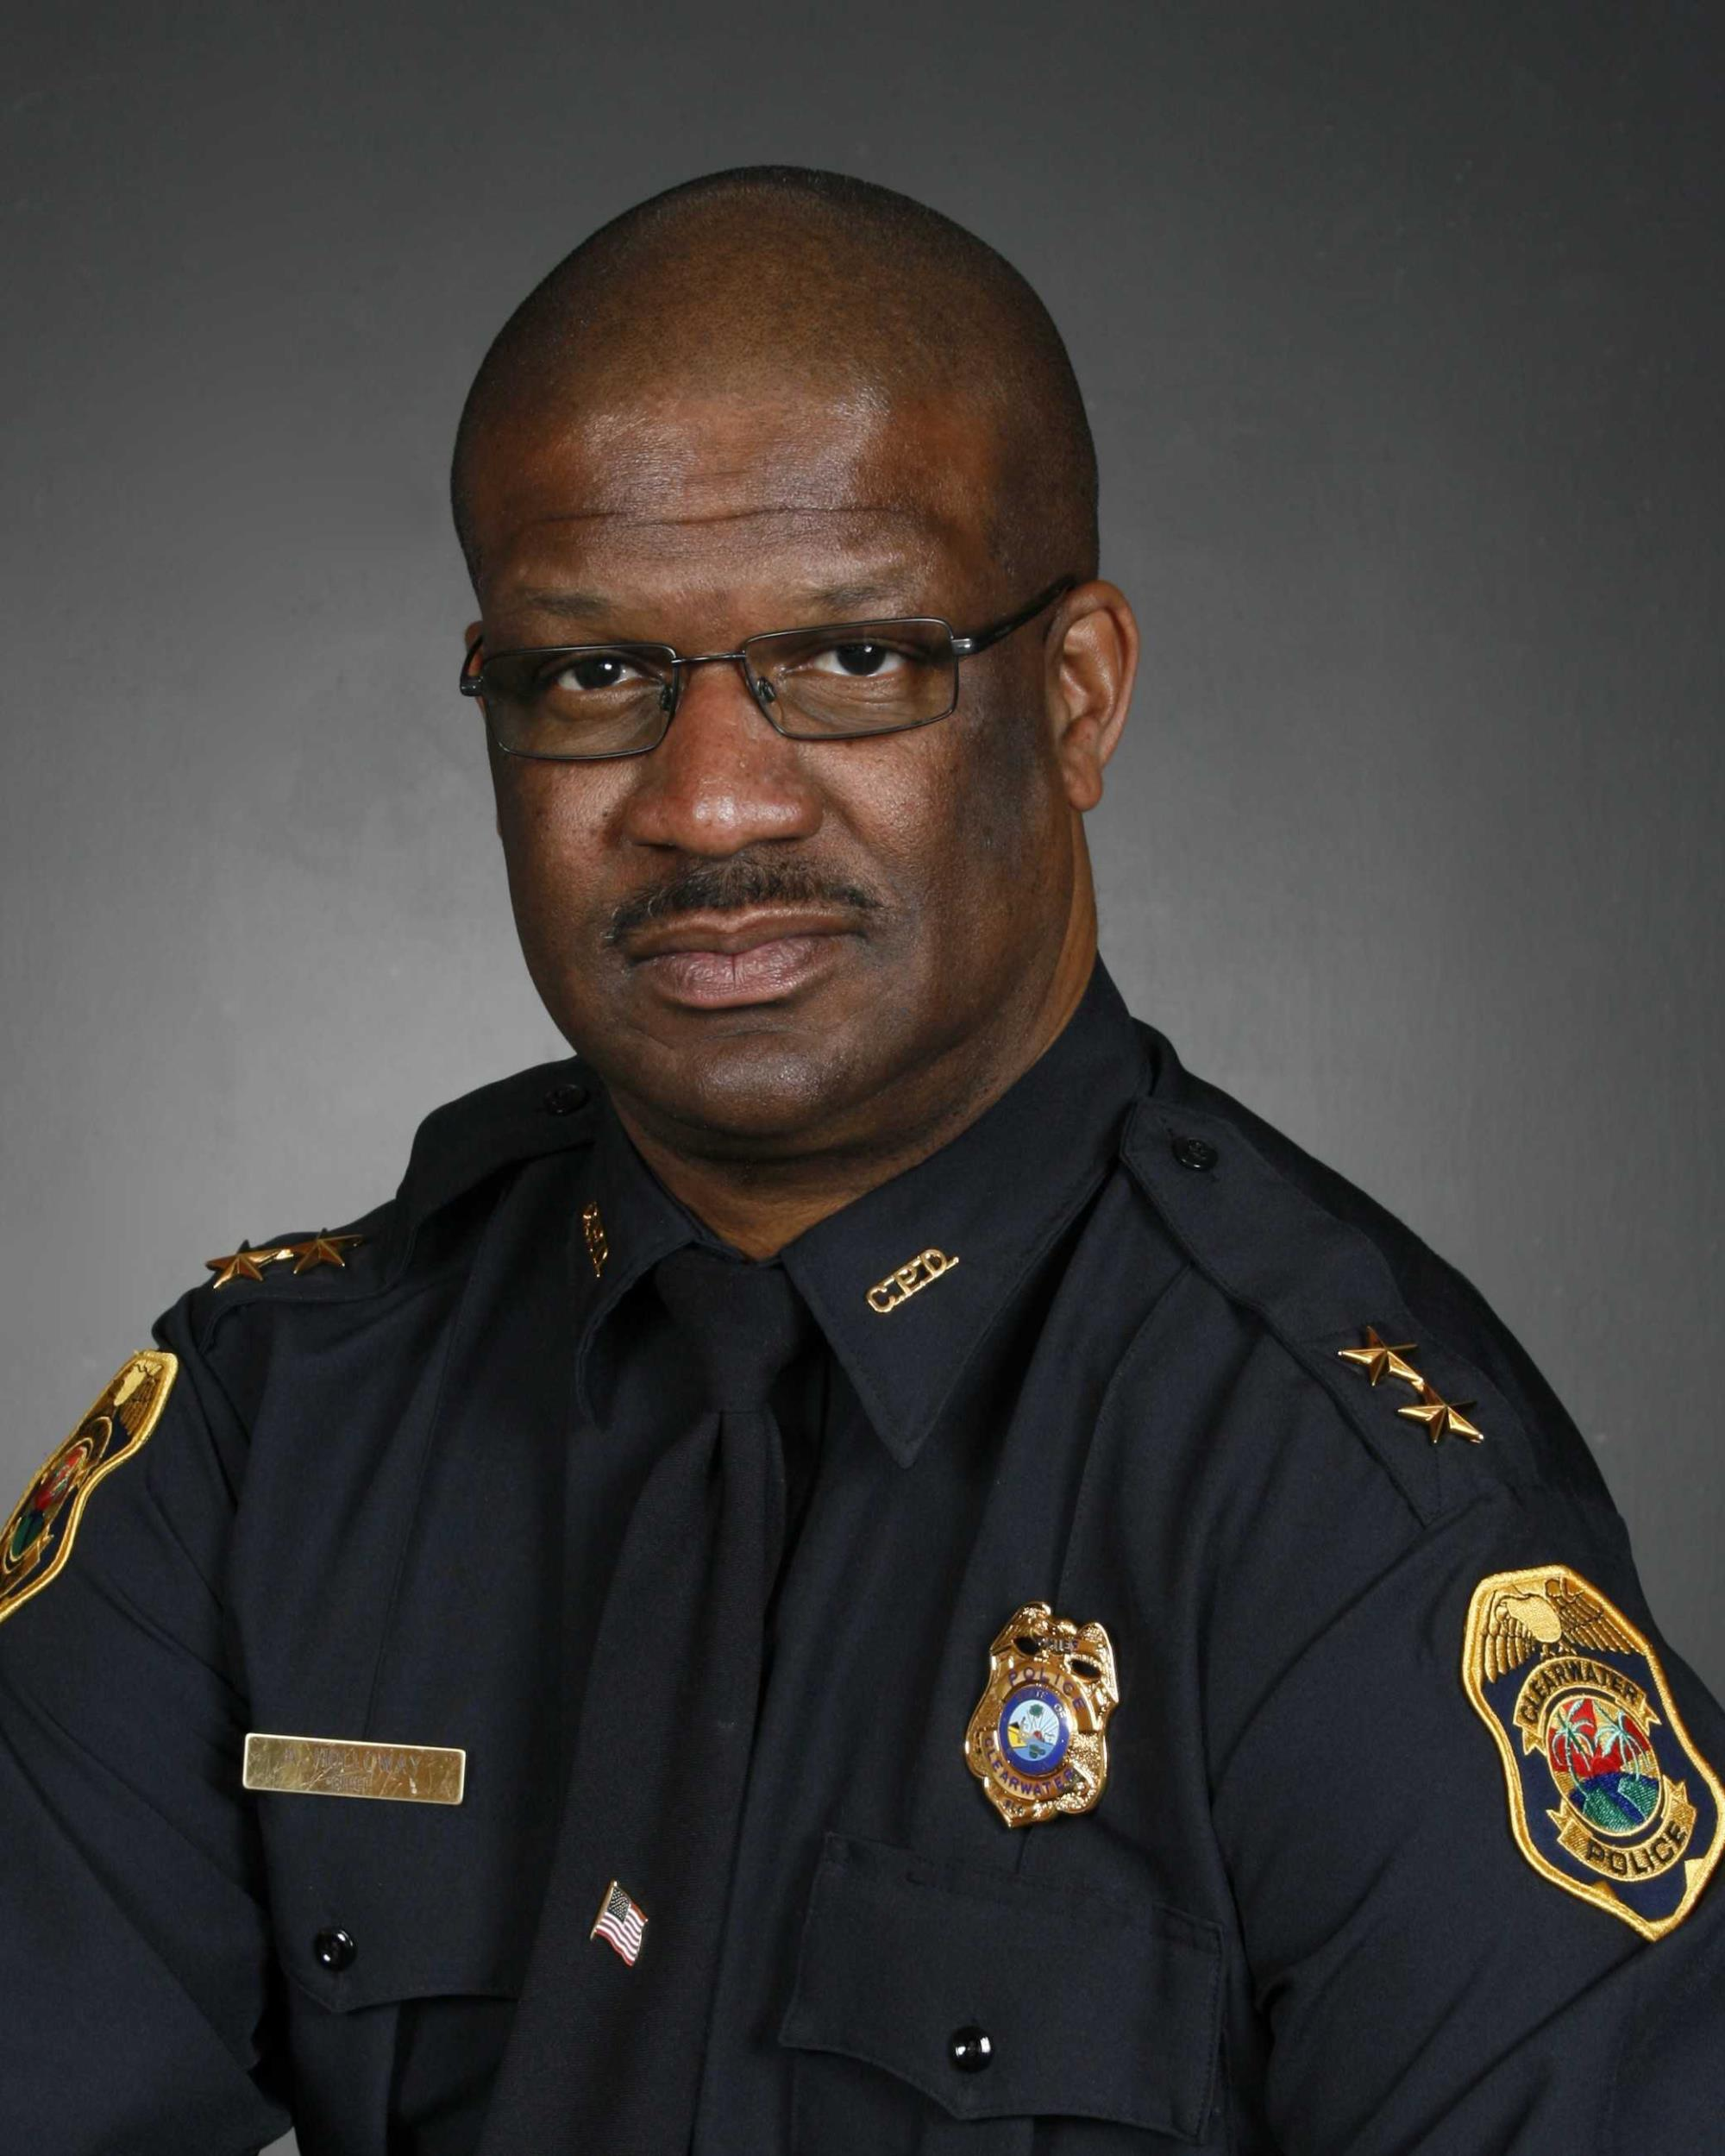 Chief Anthony Holloway